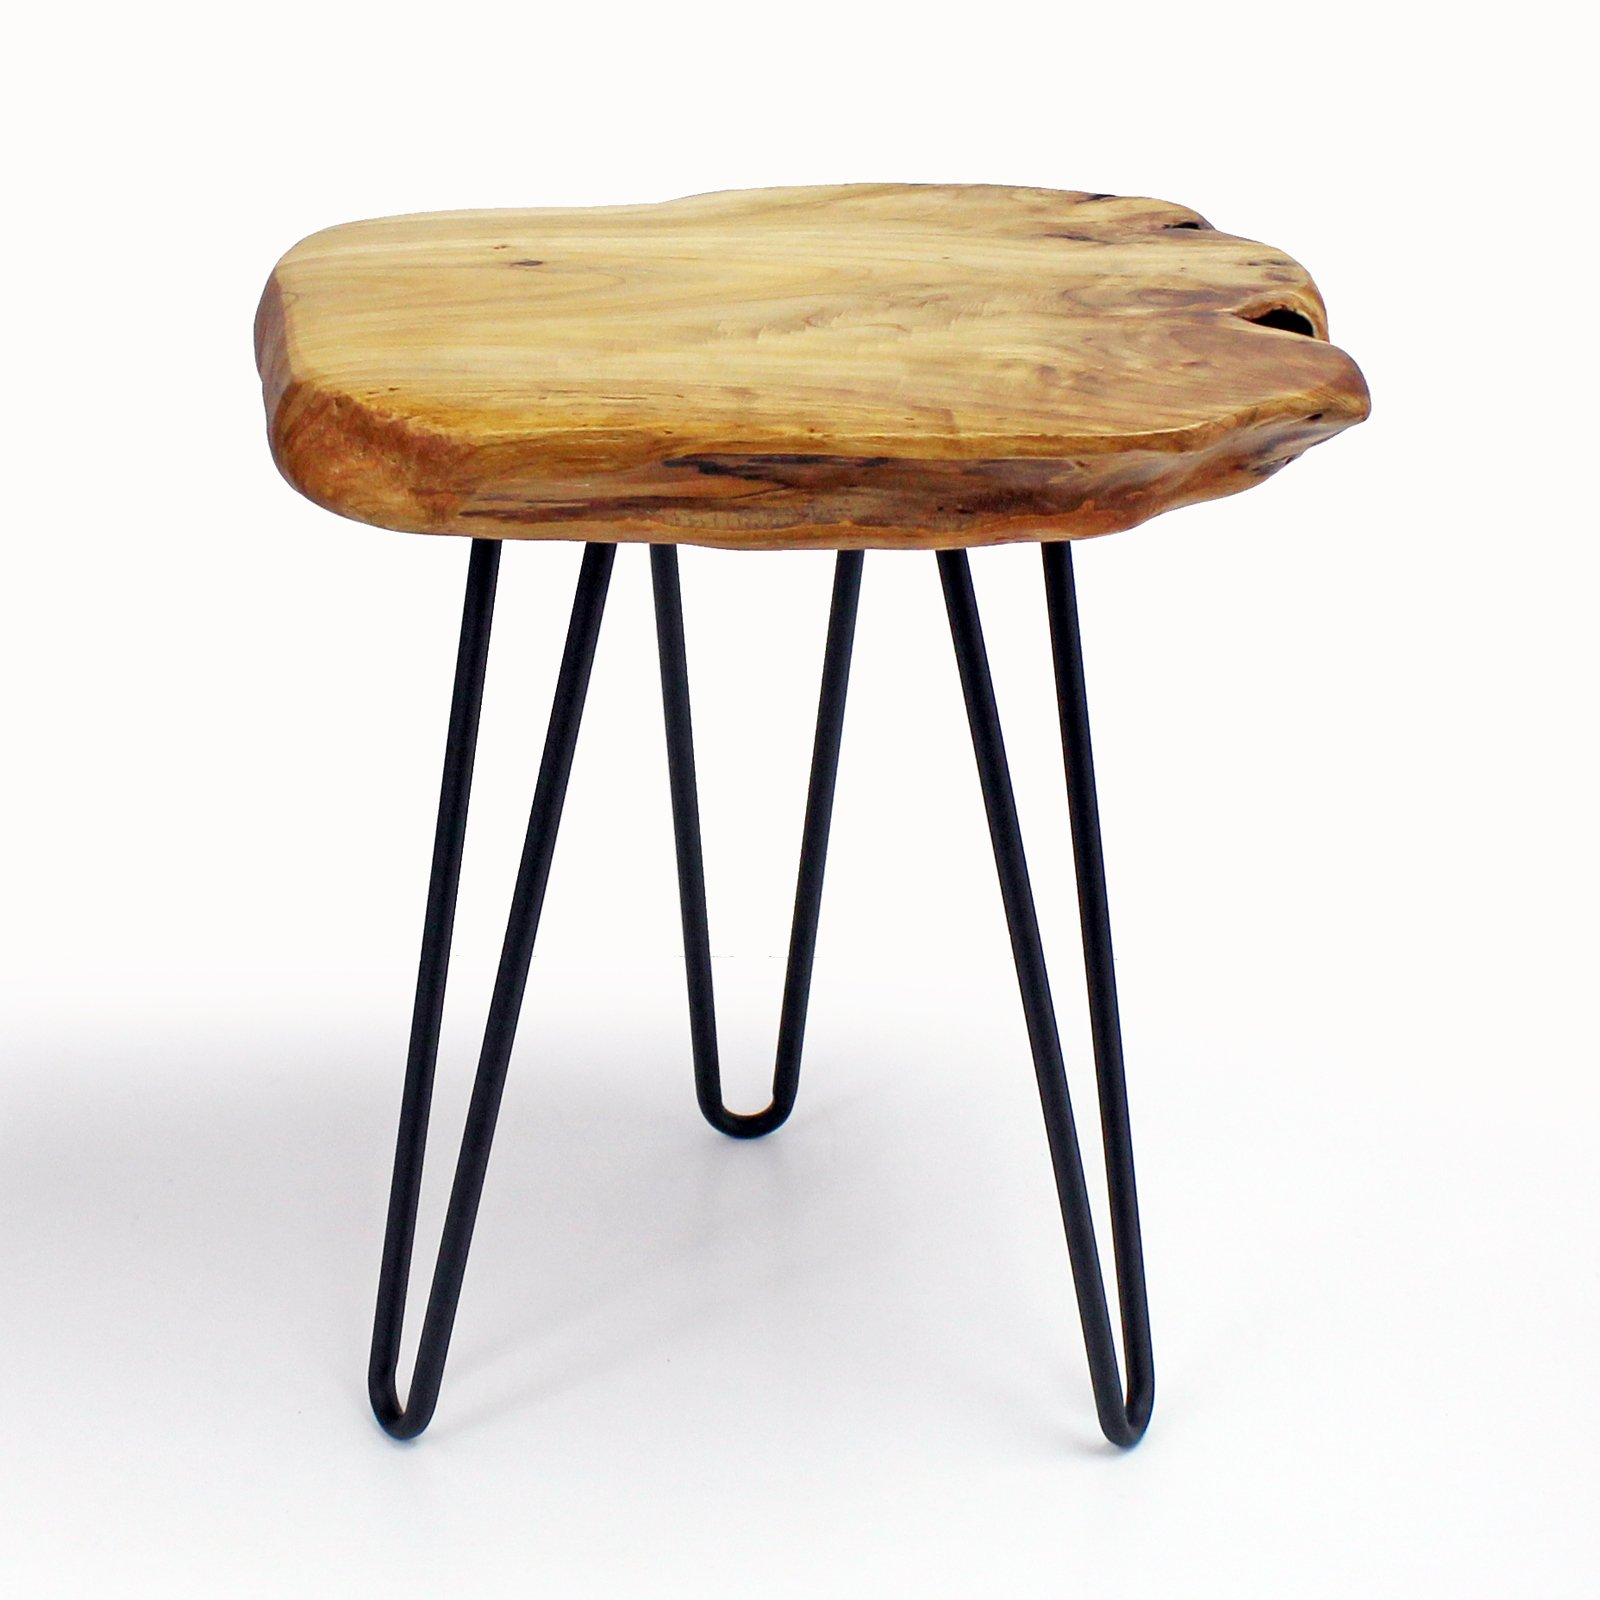 WELLAND Cedar Wood Stump Stool Unique Shape Rustic Surface Side Table With 3-Leg Metal Stand by WELLAND